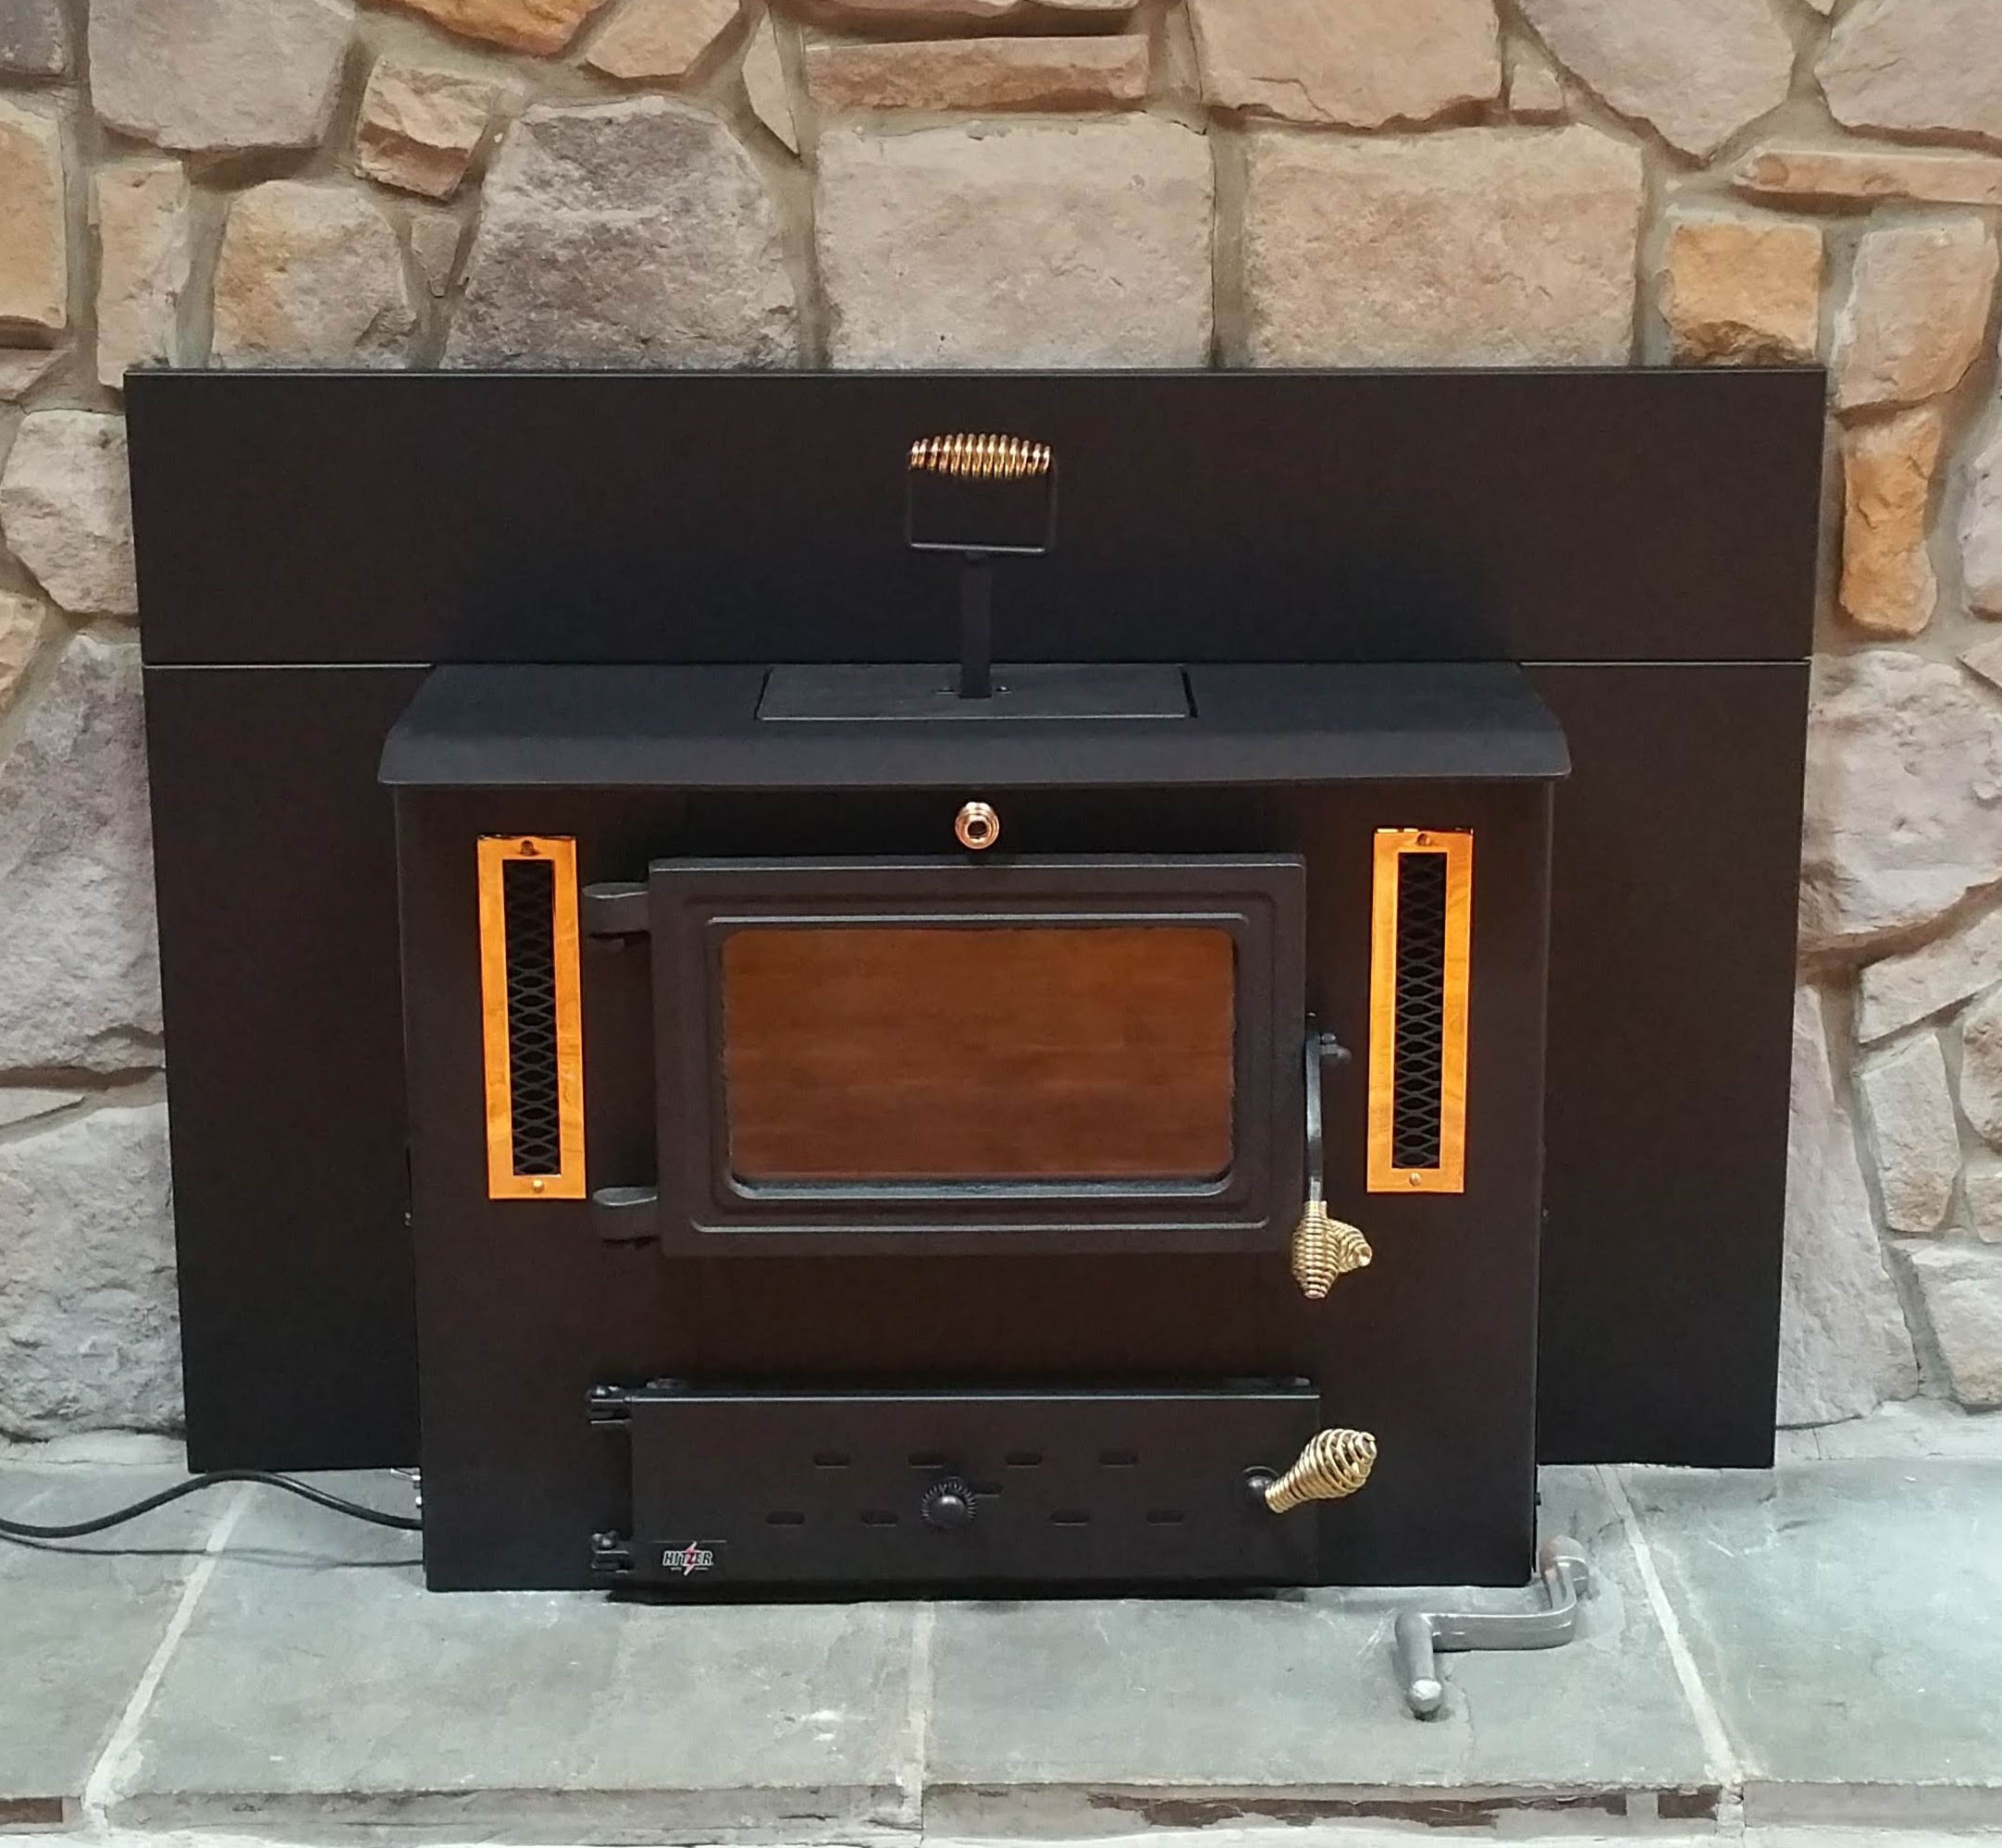 Insert Double Combustion Fireplaces Inserts Hillside Acres Stoves Coal Wood Propane